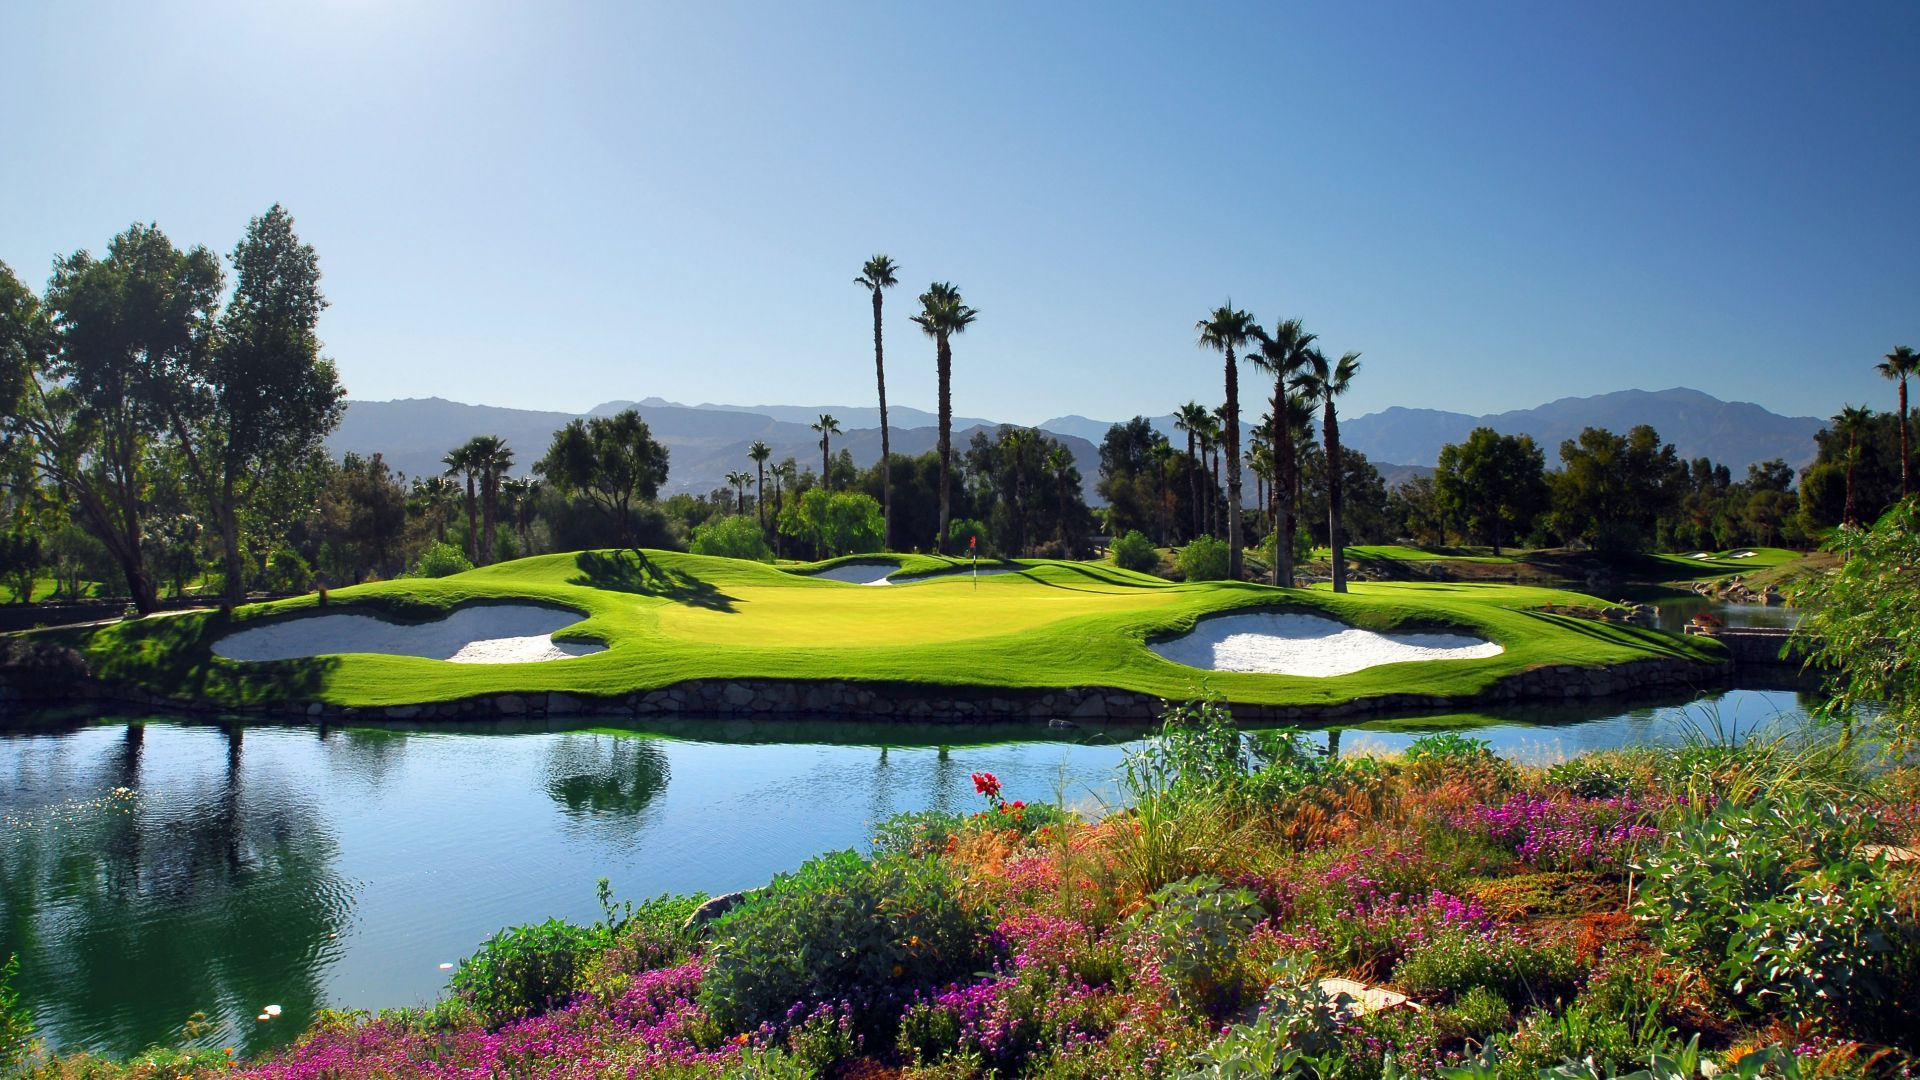 Stunning Golf Course Wallpaper In 1920x1080 Resolution Golf Courses Golf Resort Family Resorts